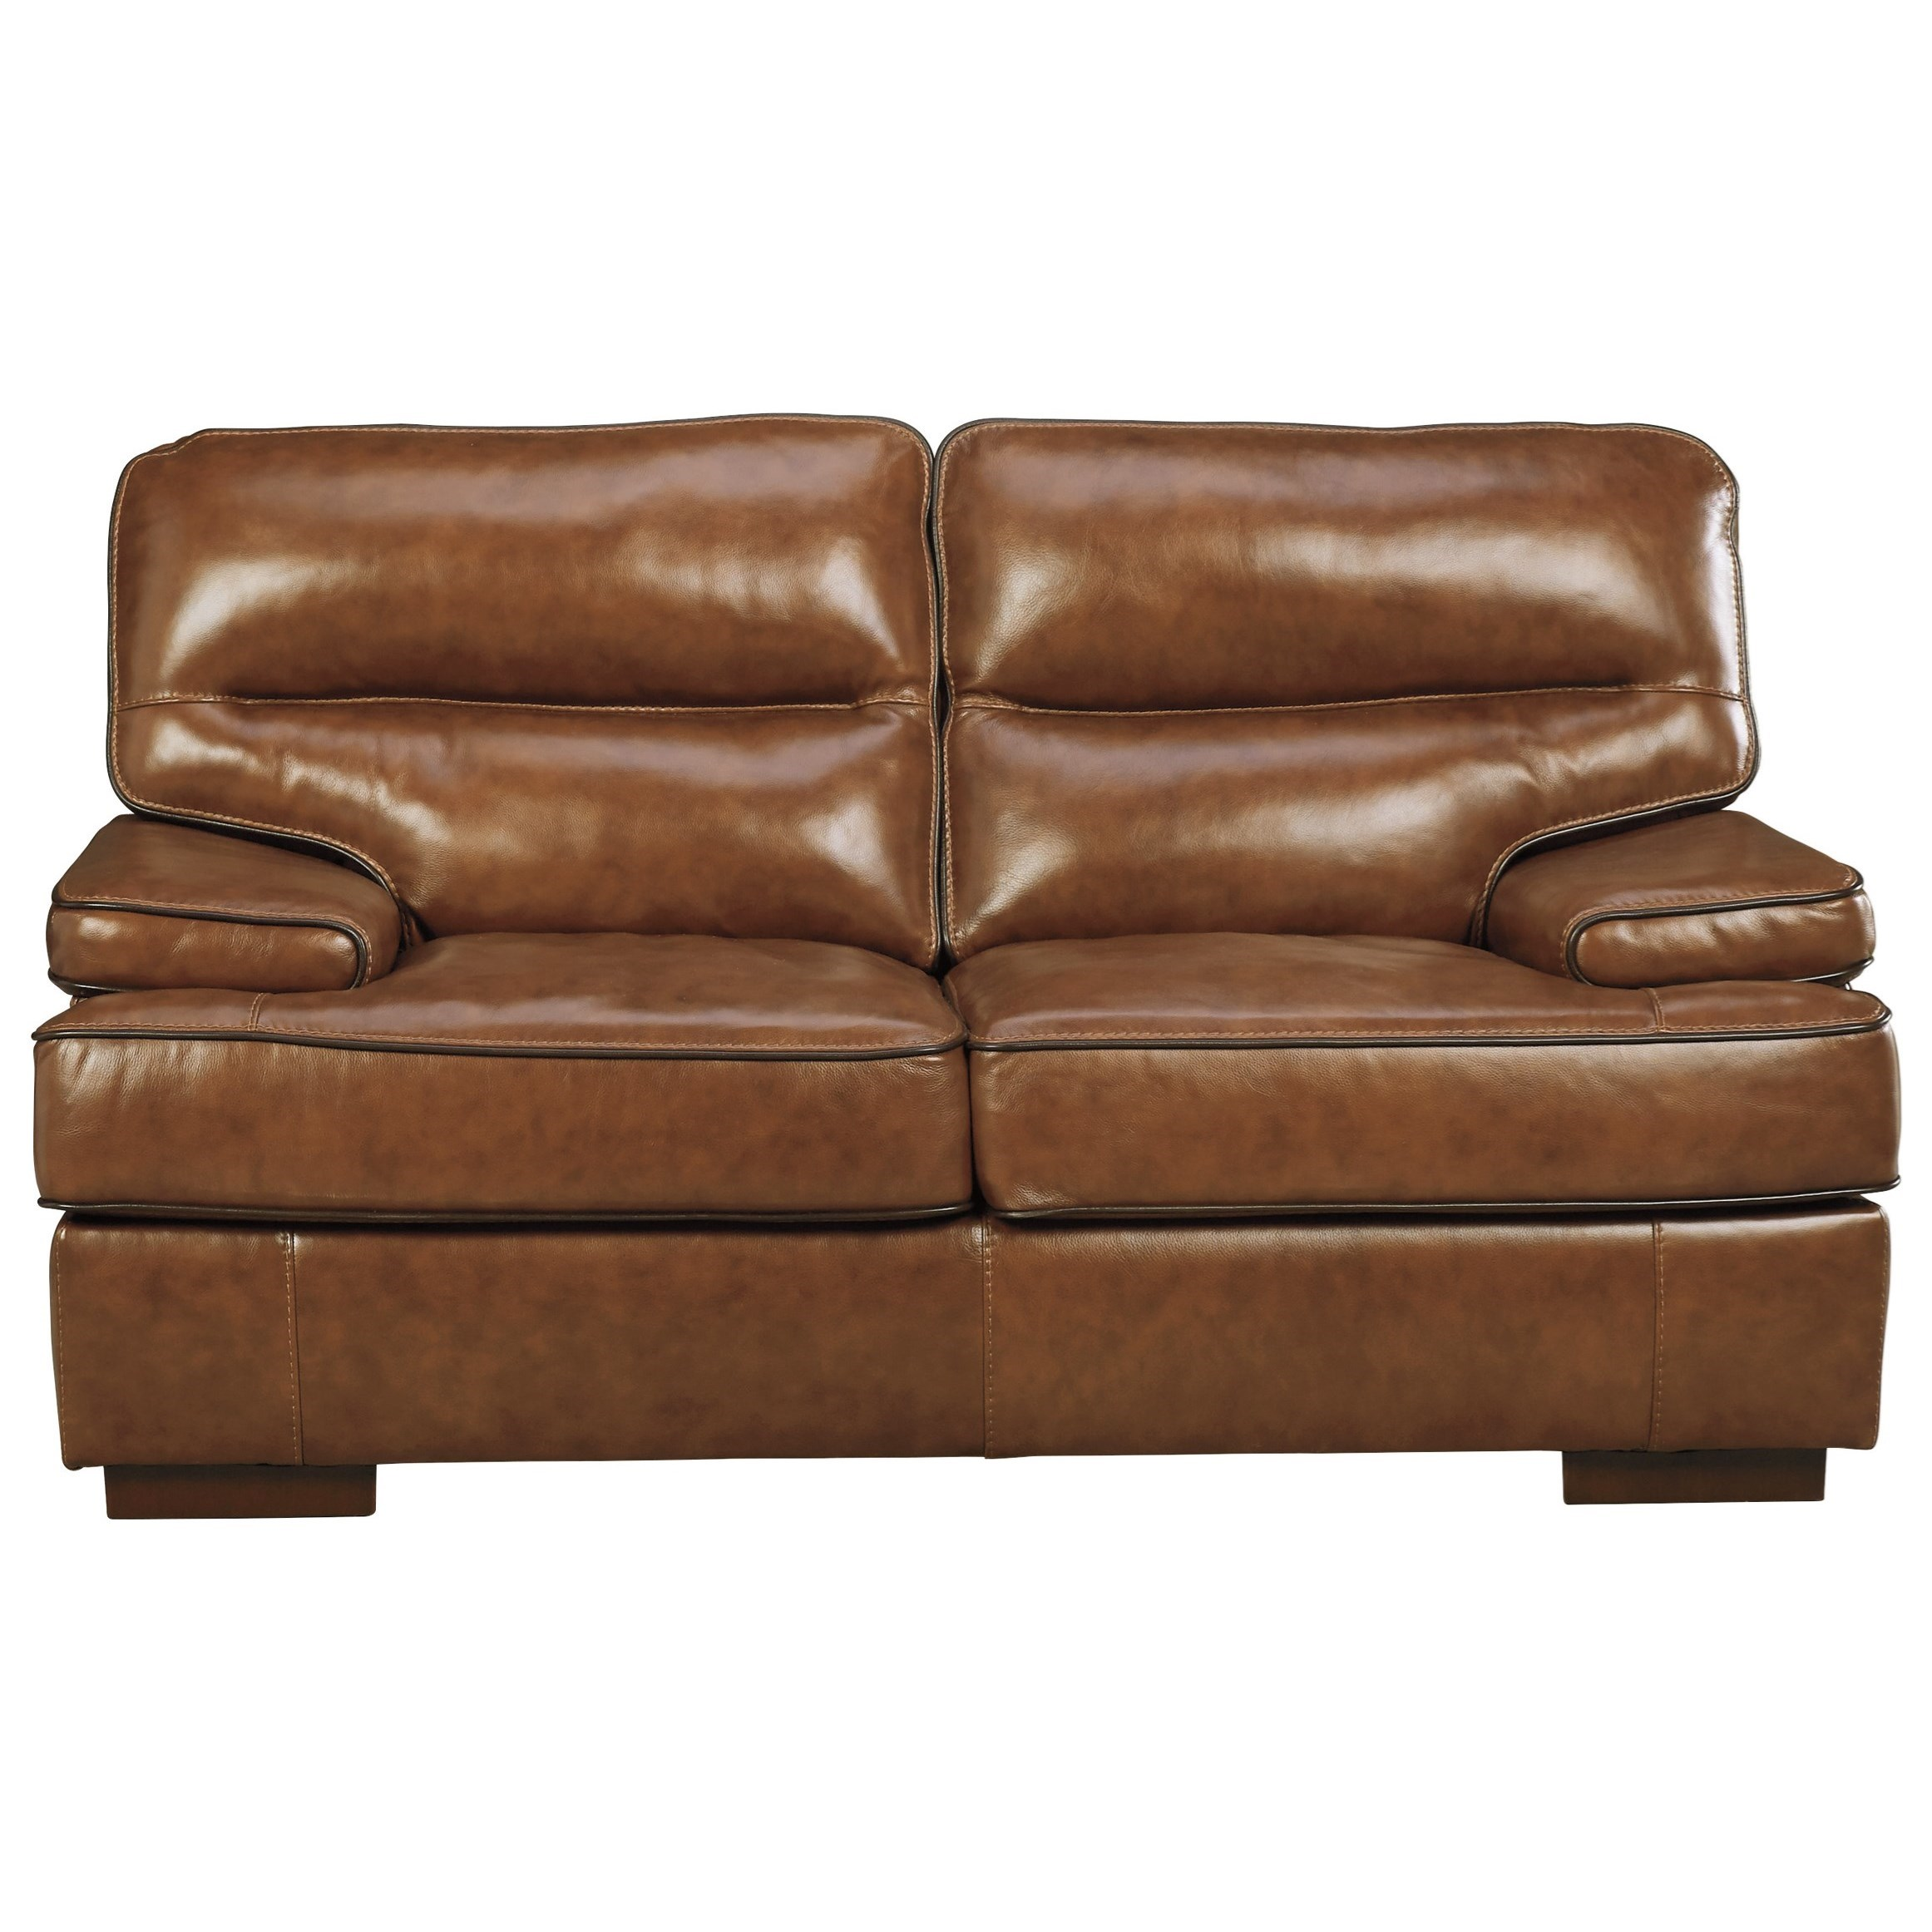 Signature Design By Ashley Palner 7850135 Contemporary Leather Match Loveseat Household